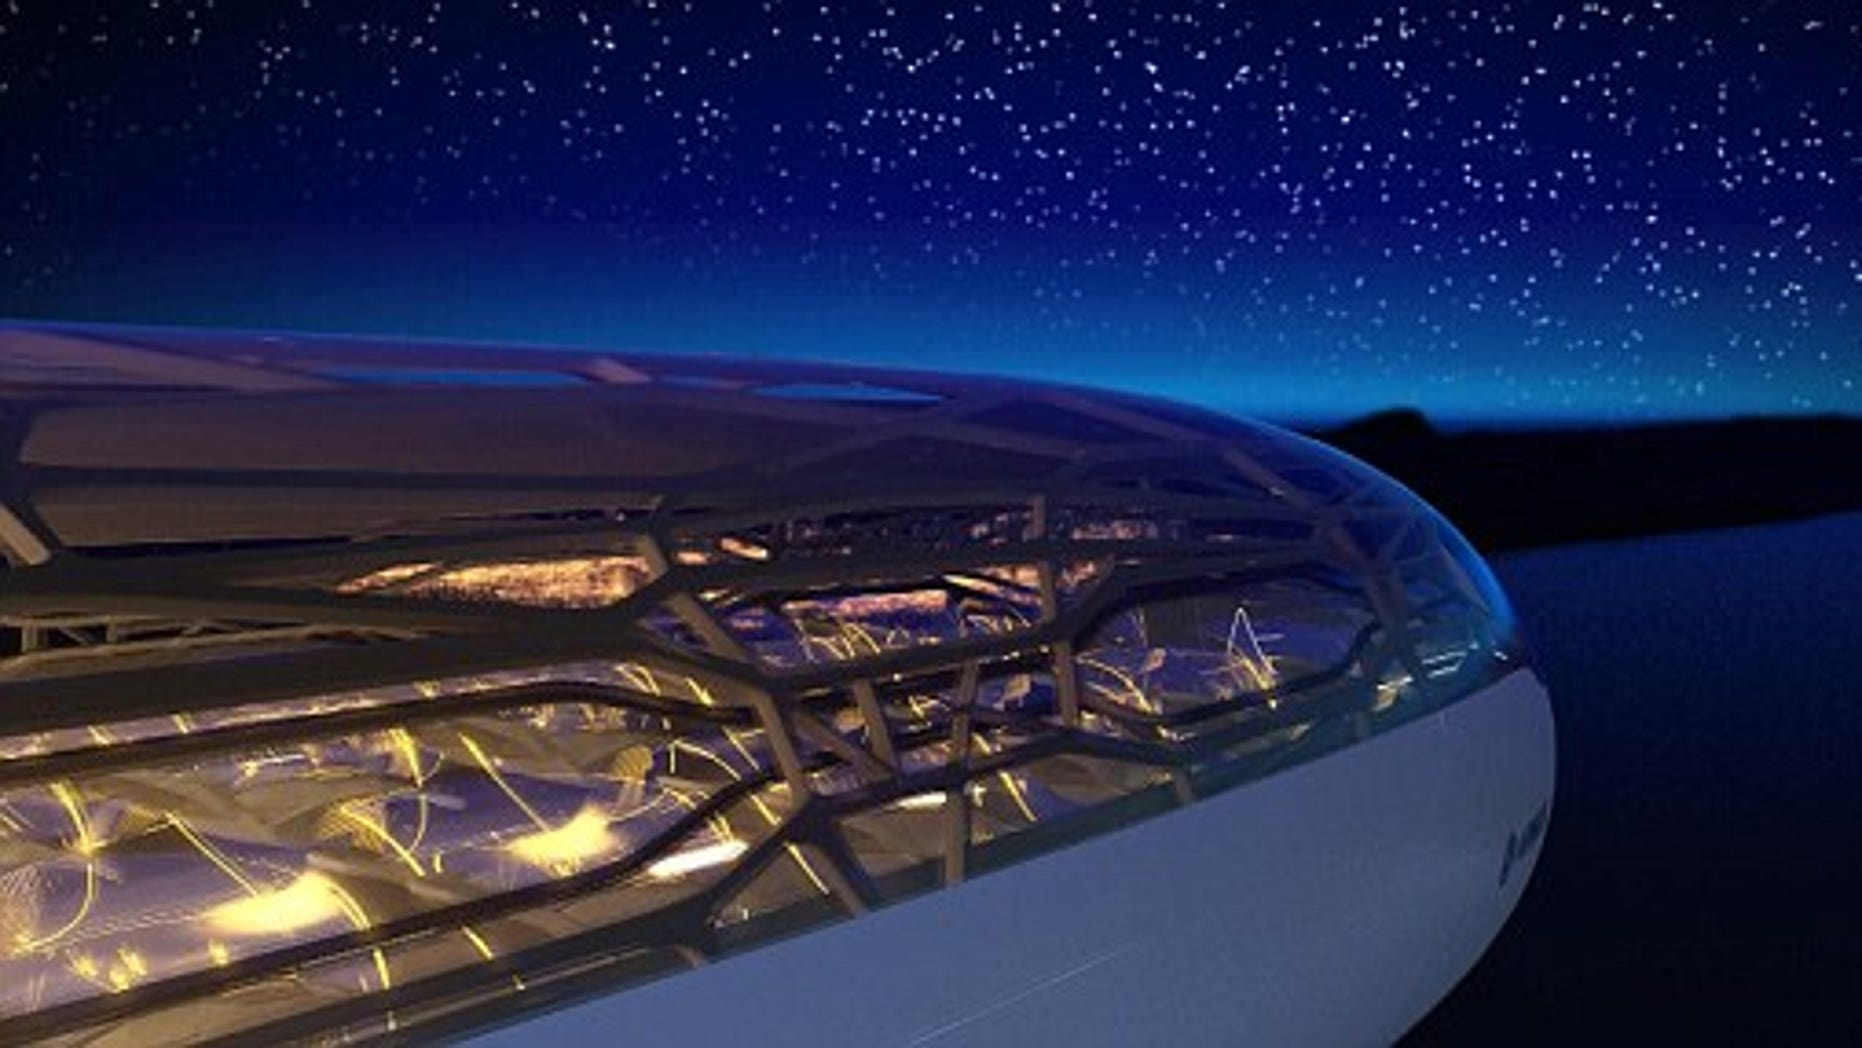 """Undated Airbus handout image of artists impression of the exterior view of an """"intelligent"""" concept cabin that air travellers in 2050 might fly in designed by Airbus."""